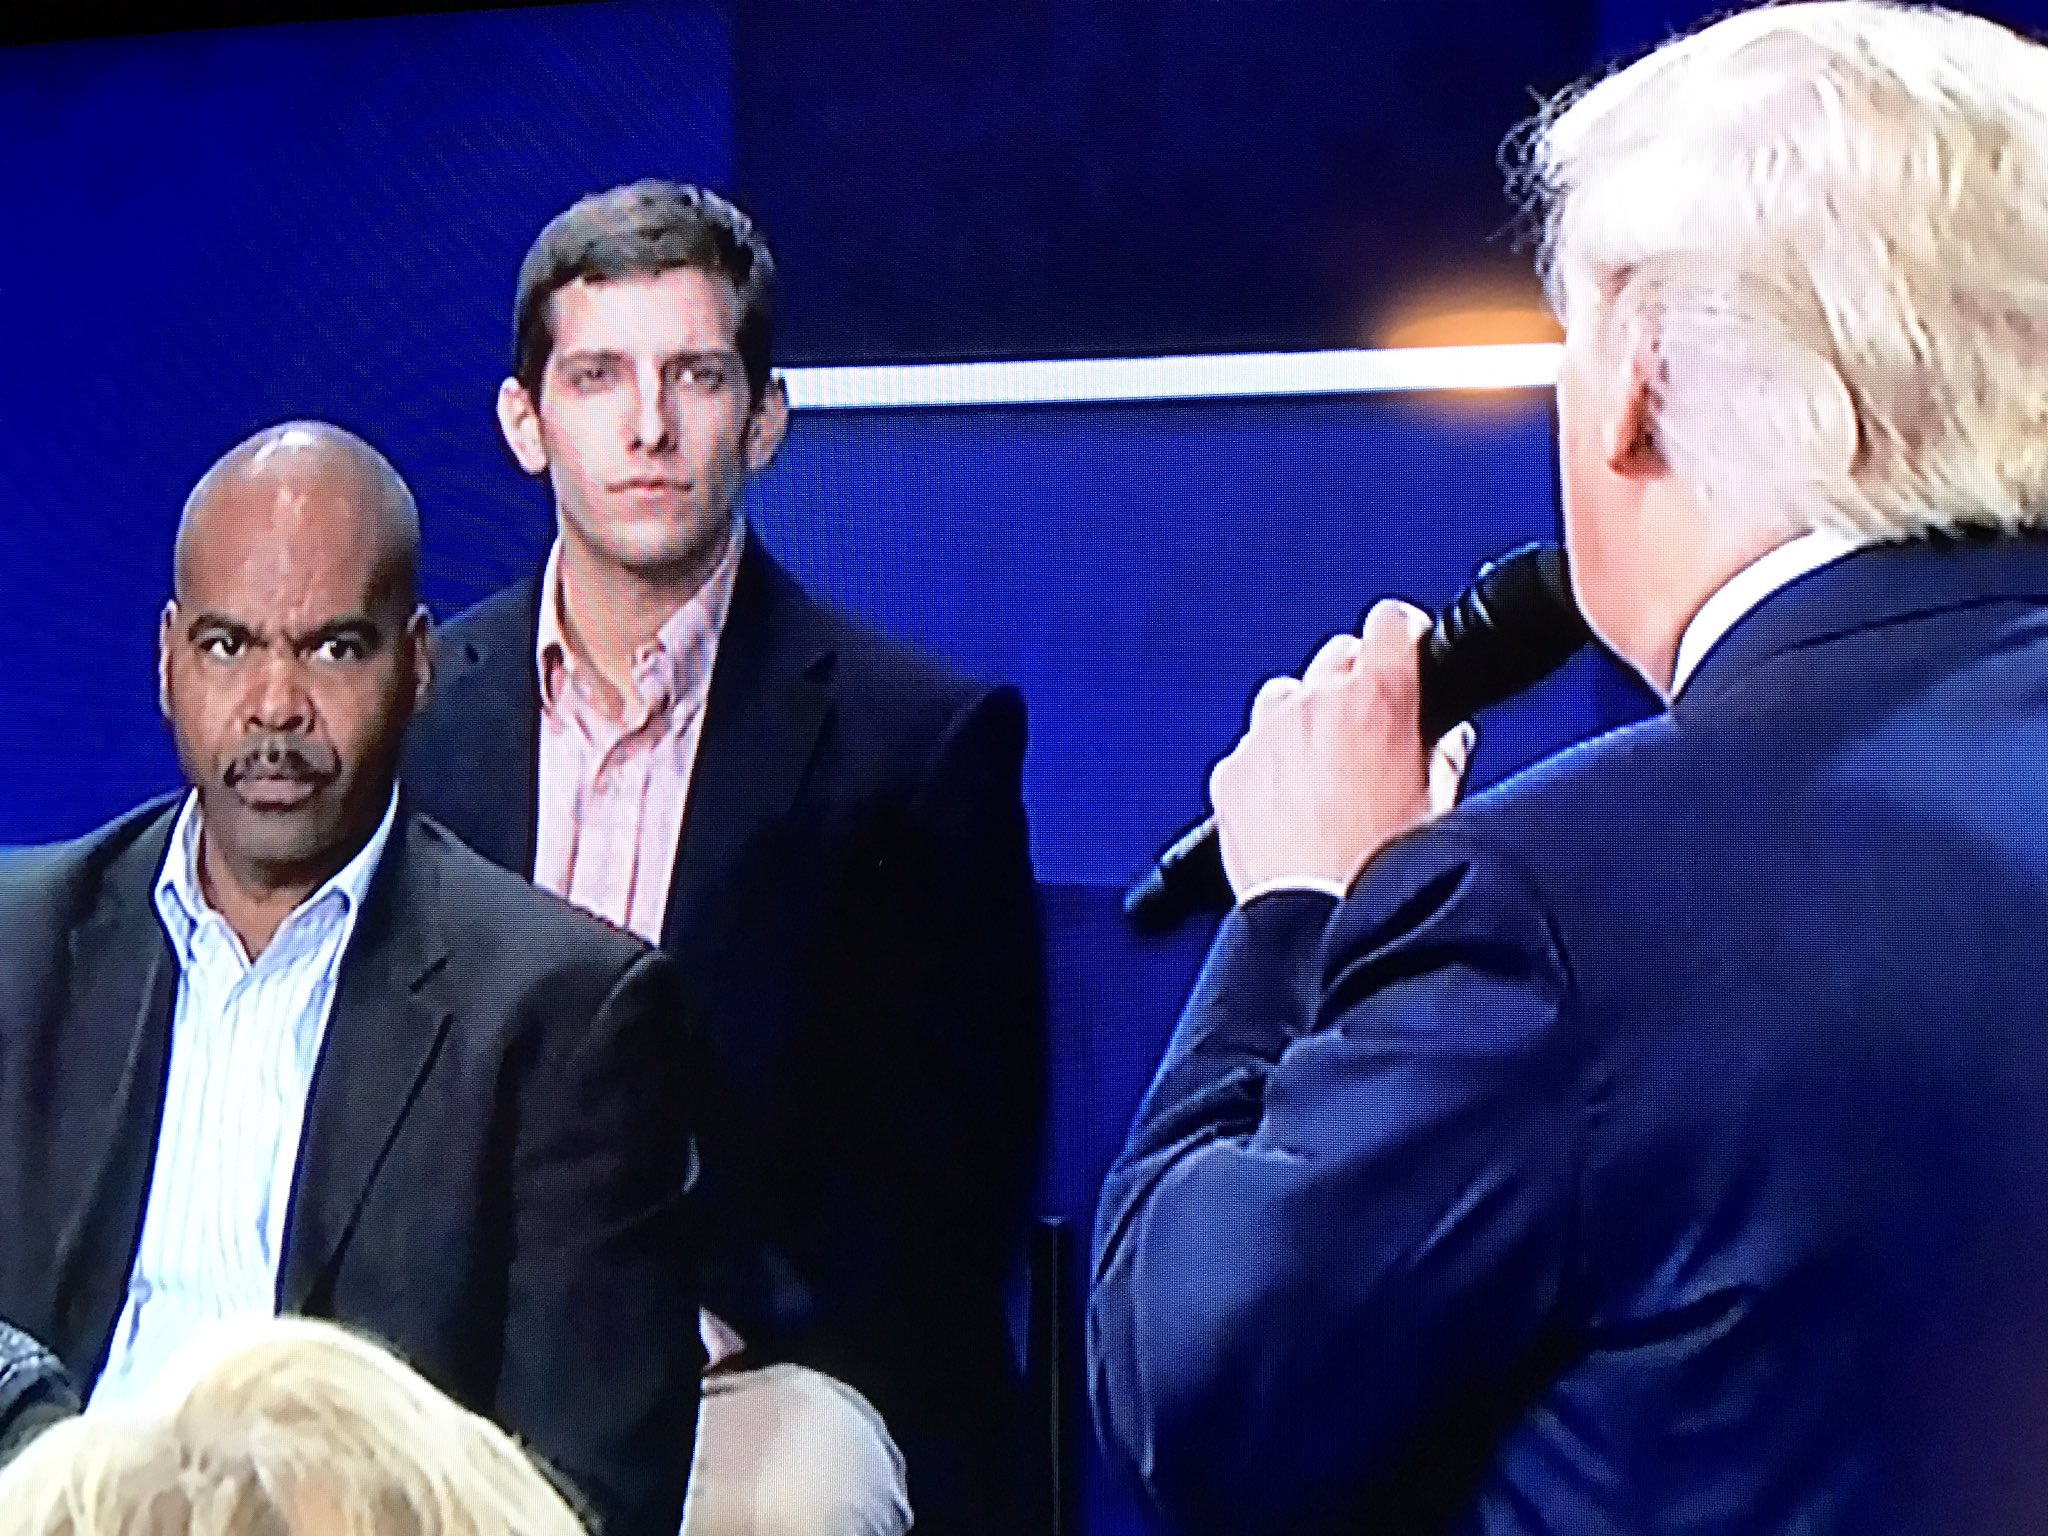 He is every Black person right now #debate https://t.co/G7rMJKUKFc